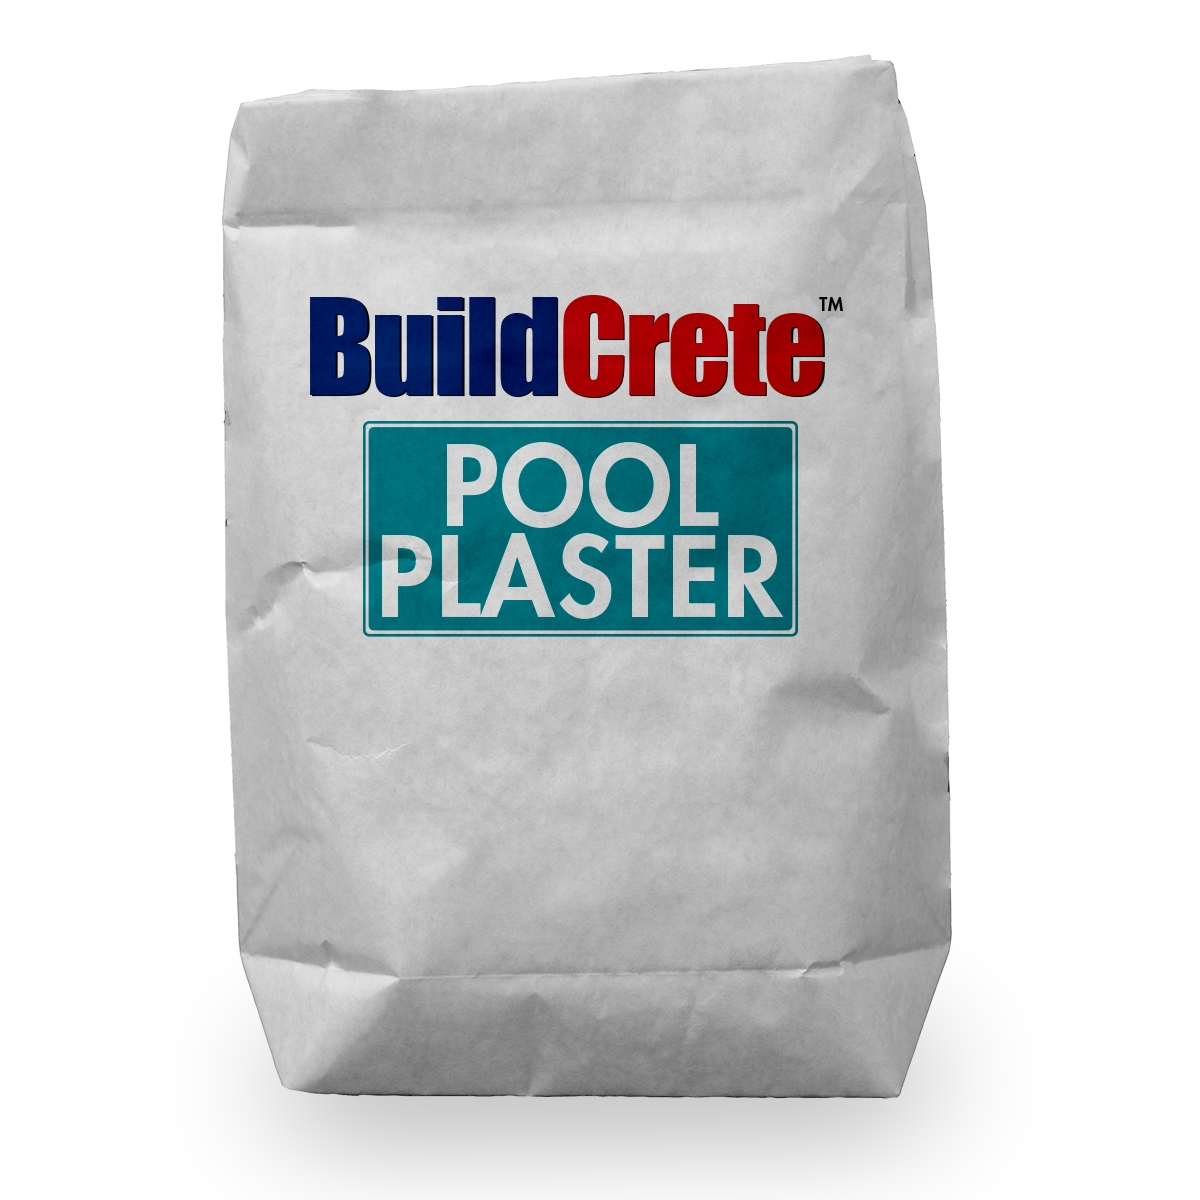 Press Release: BuildBlock ICFs Releases BuildCrete Pool Plaster